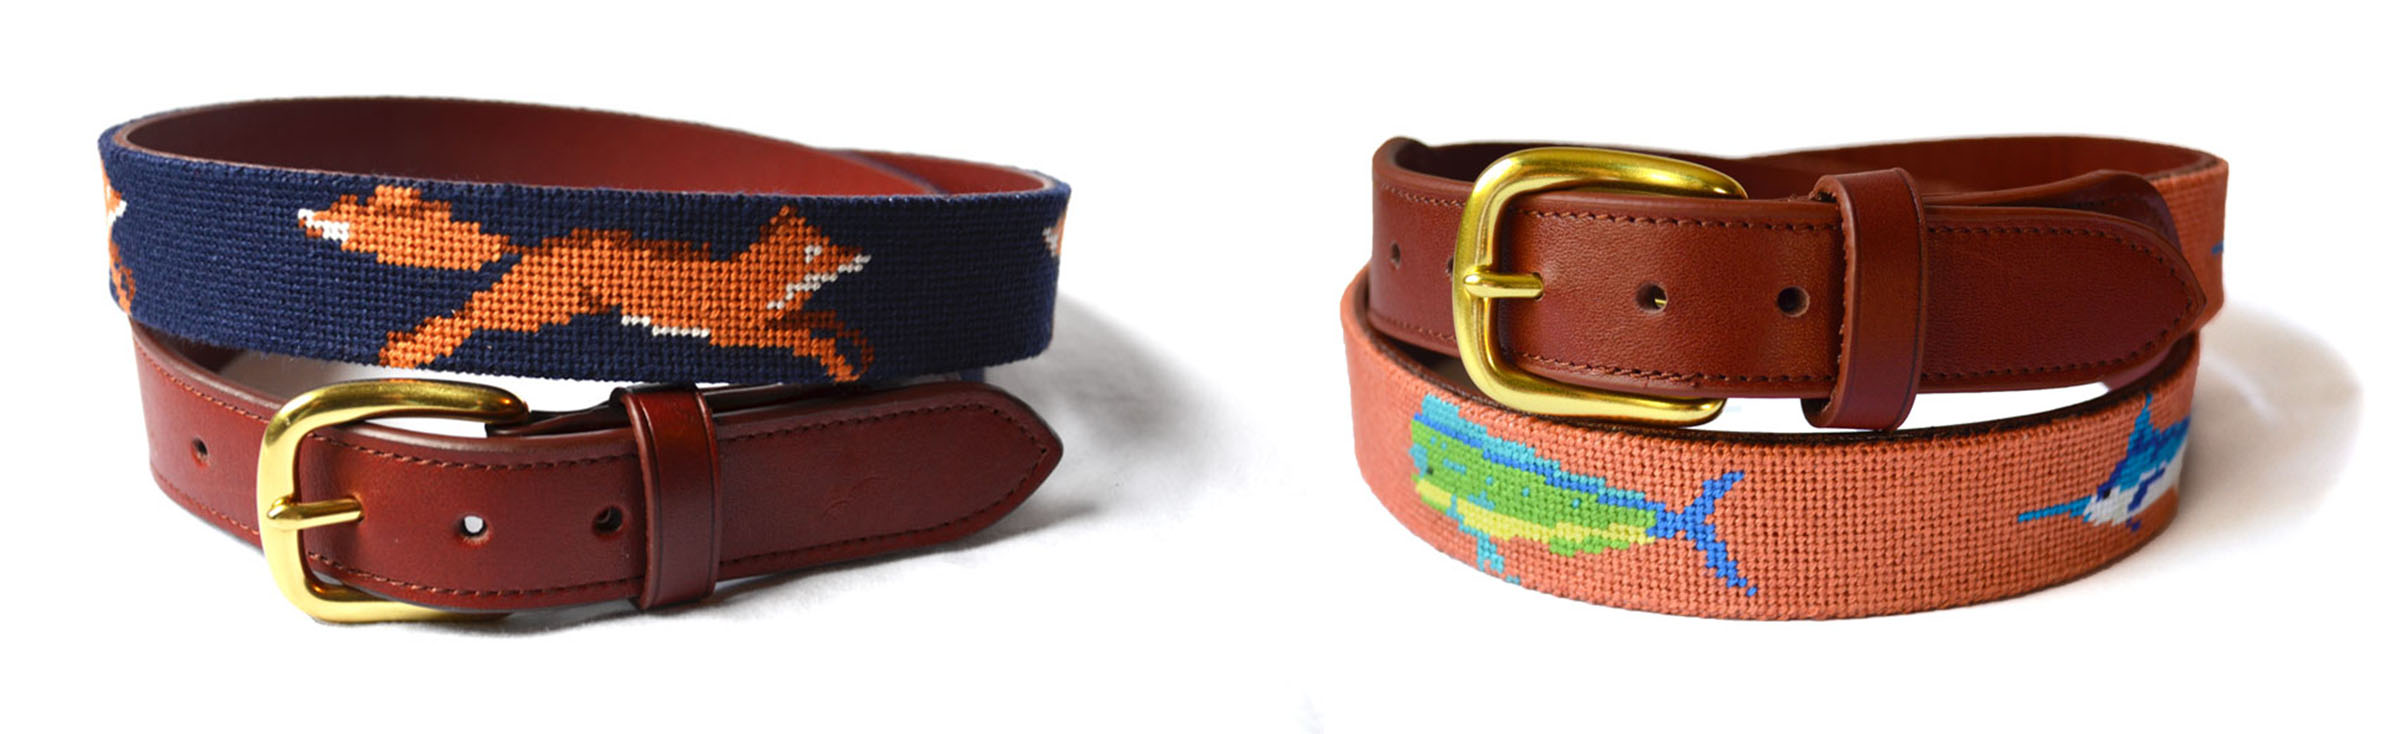 coverphoto_belts